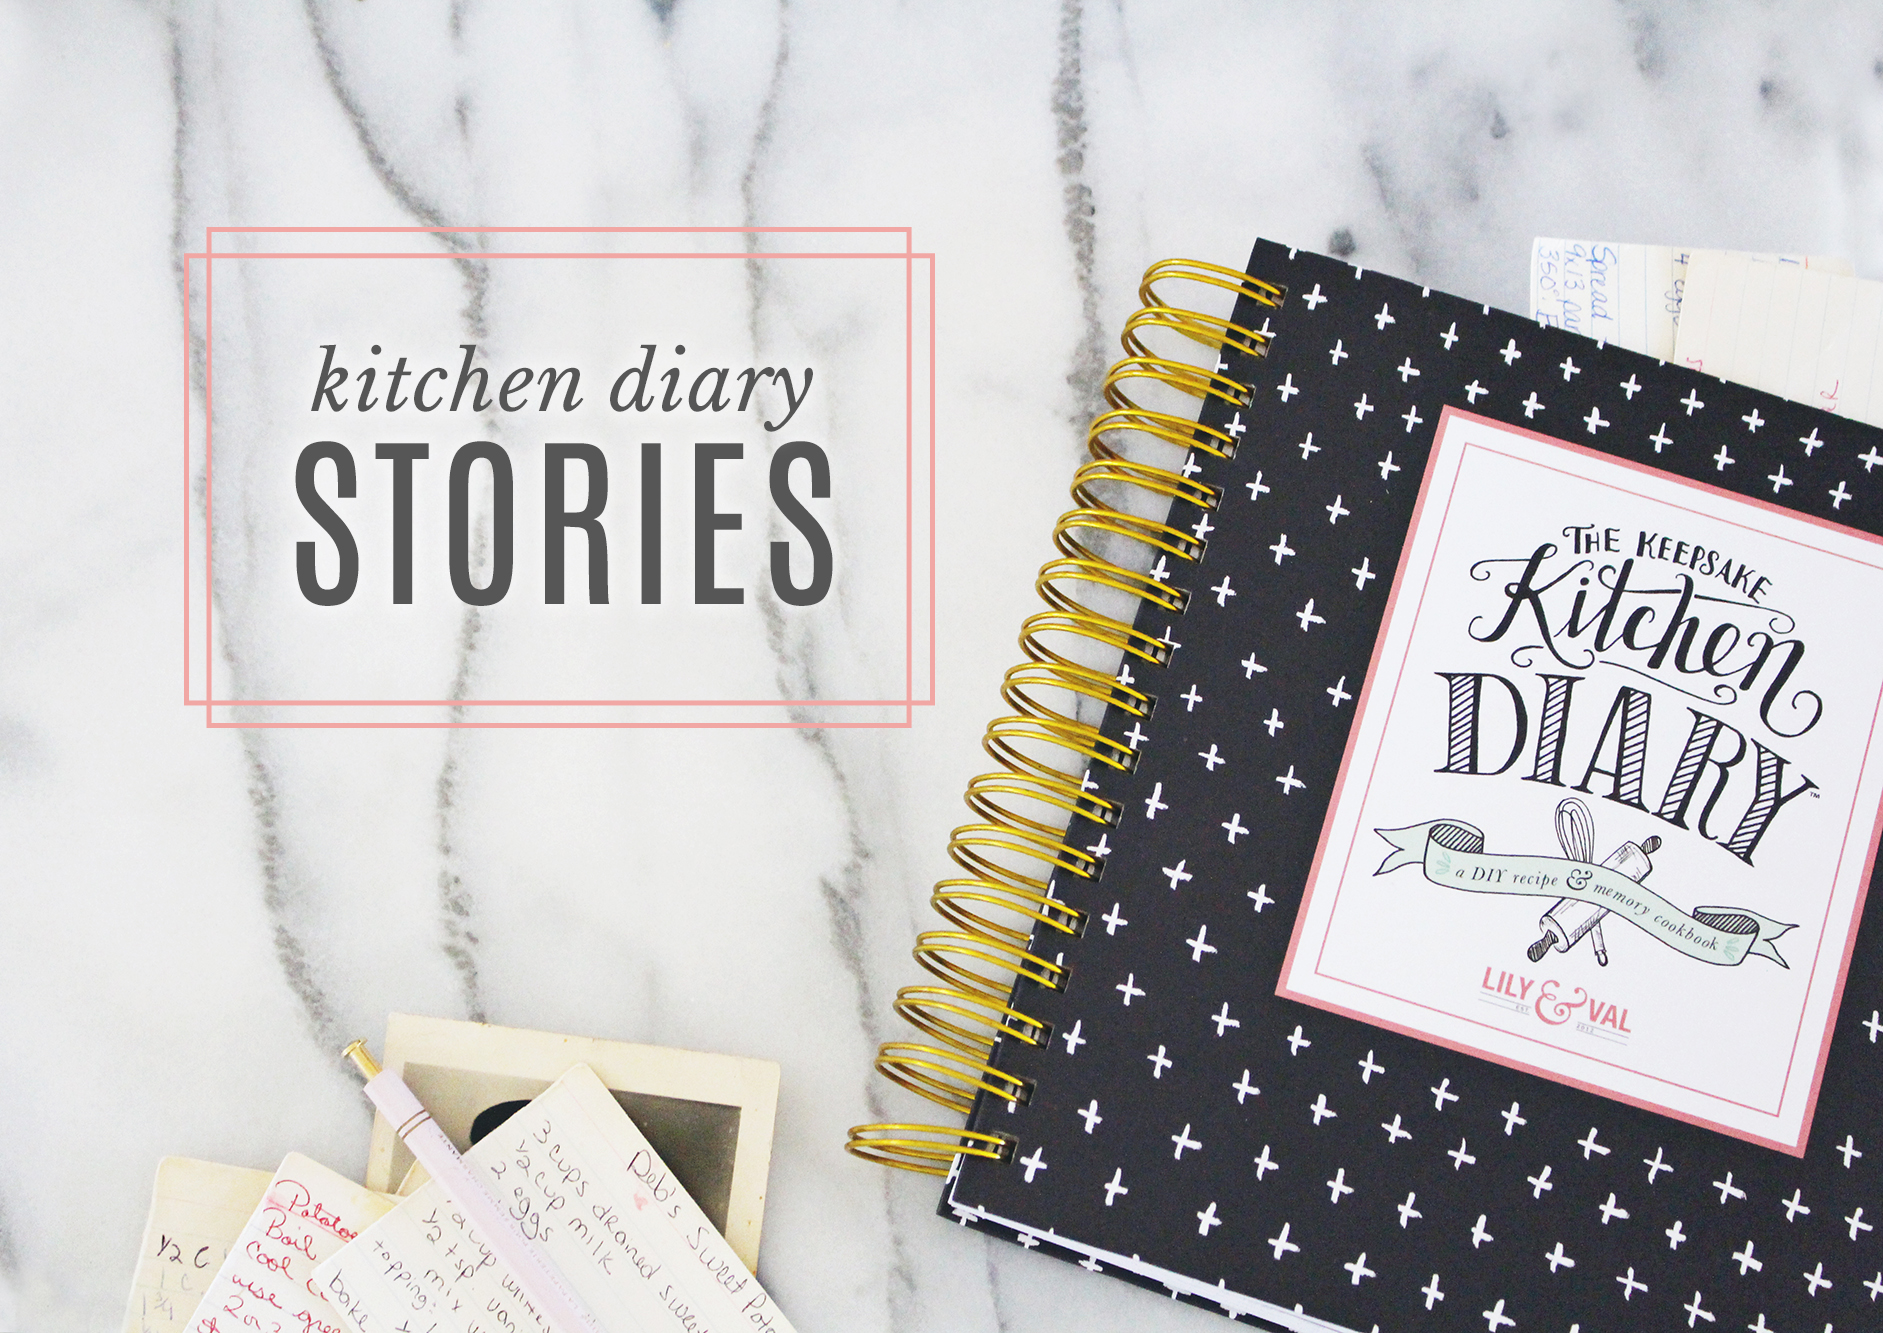 Recipes and Memories combine in our Kitchen Diary Stories series on Lily & Val Living. This series is based on our Keepsake Kitchen Diary!